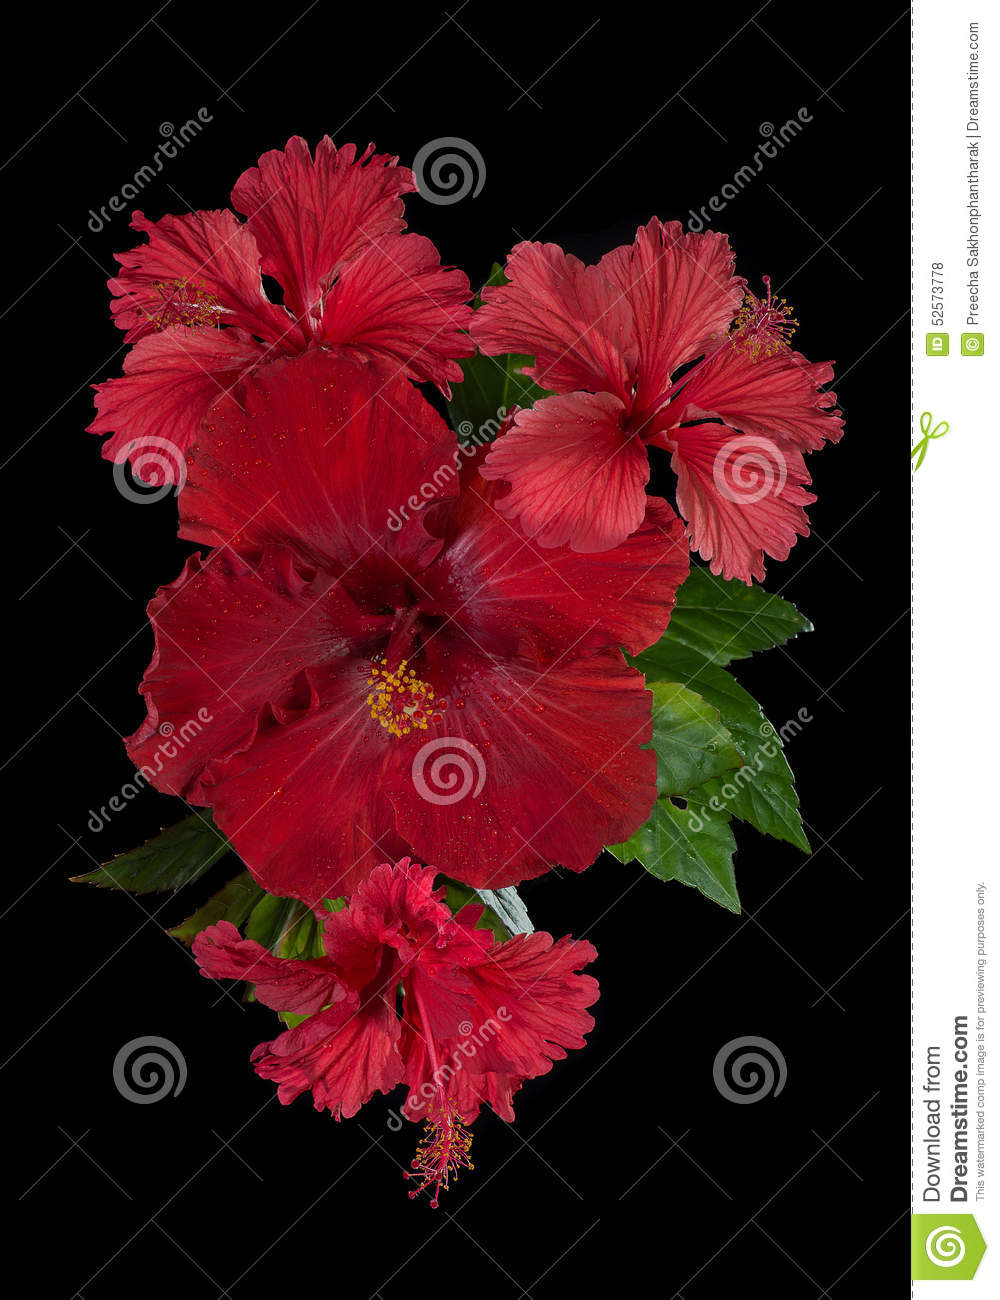 Red hibiscus flower with leaves stock photo image of head black download red hibiscus flower with leaves stock photo image of head black 52573778 izmirmasajfo